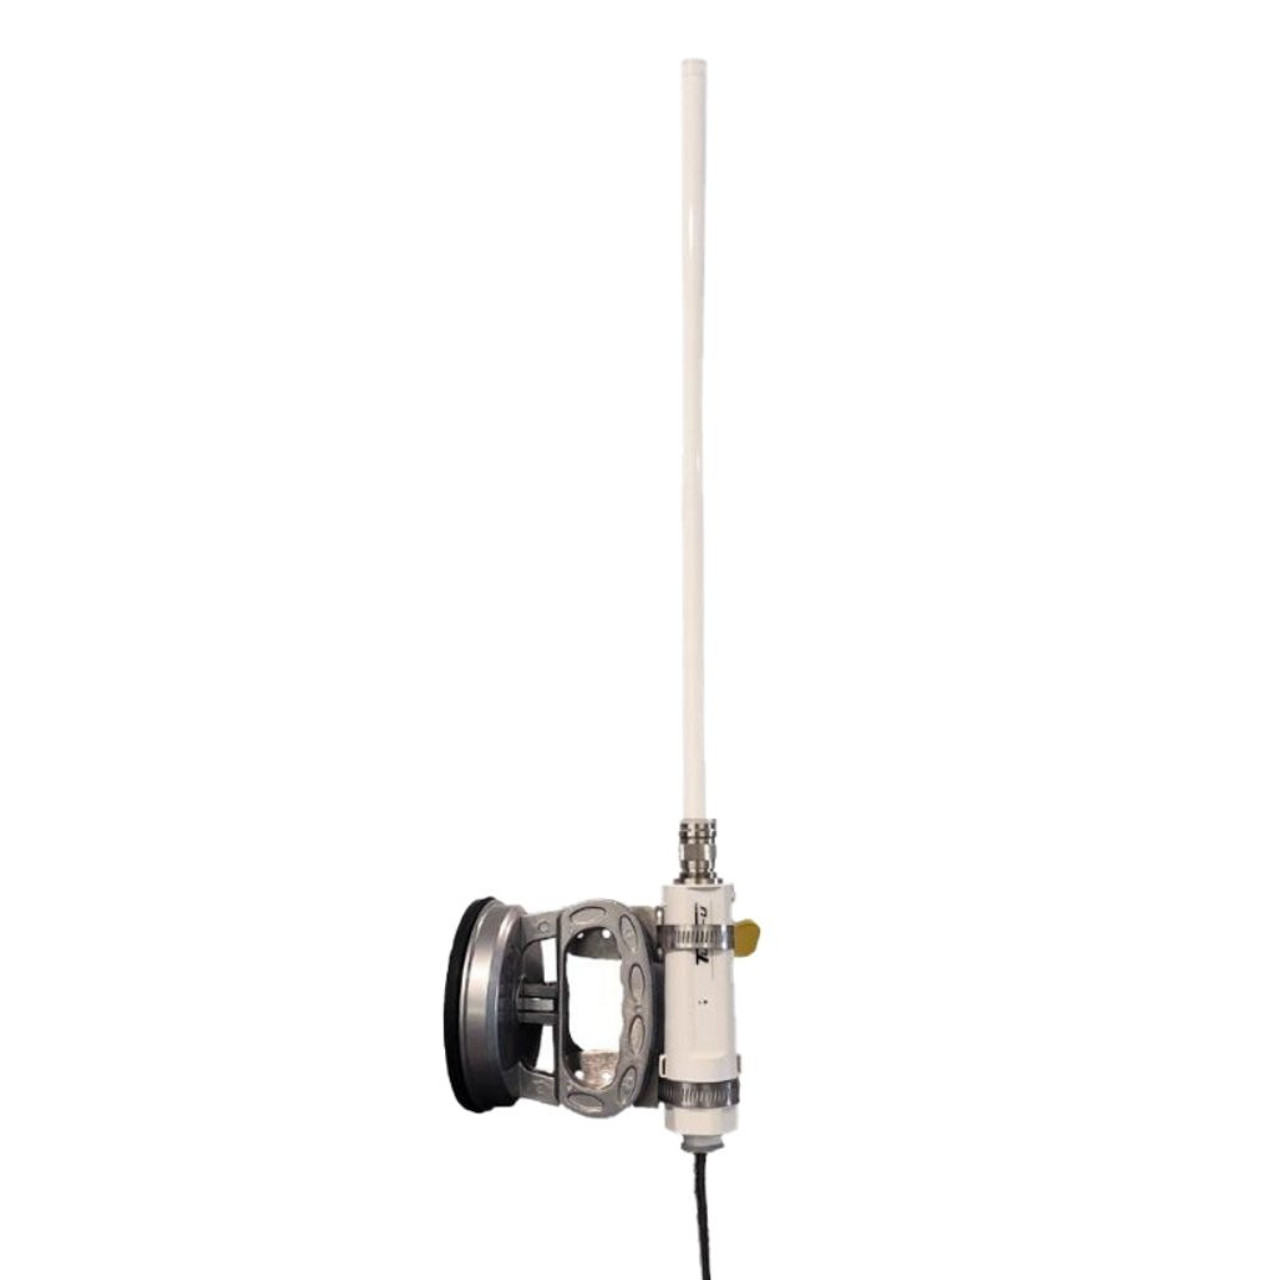 antenna mount using suction cup and extended pole for higher positioning.